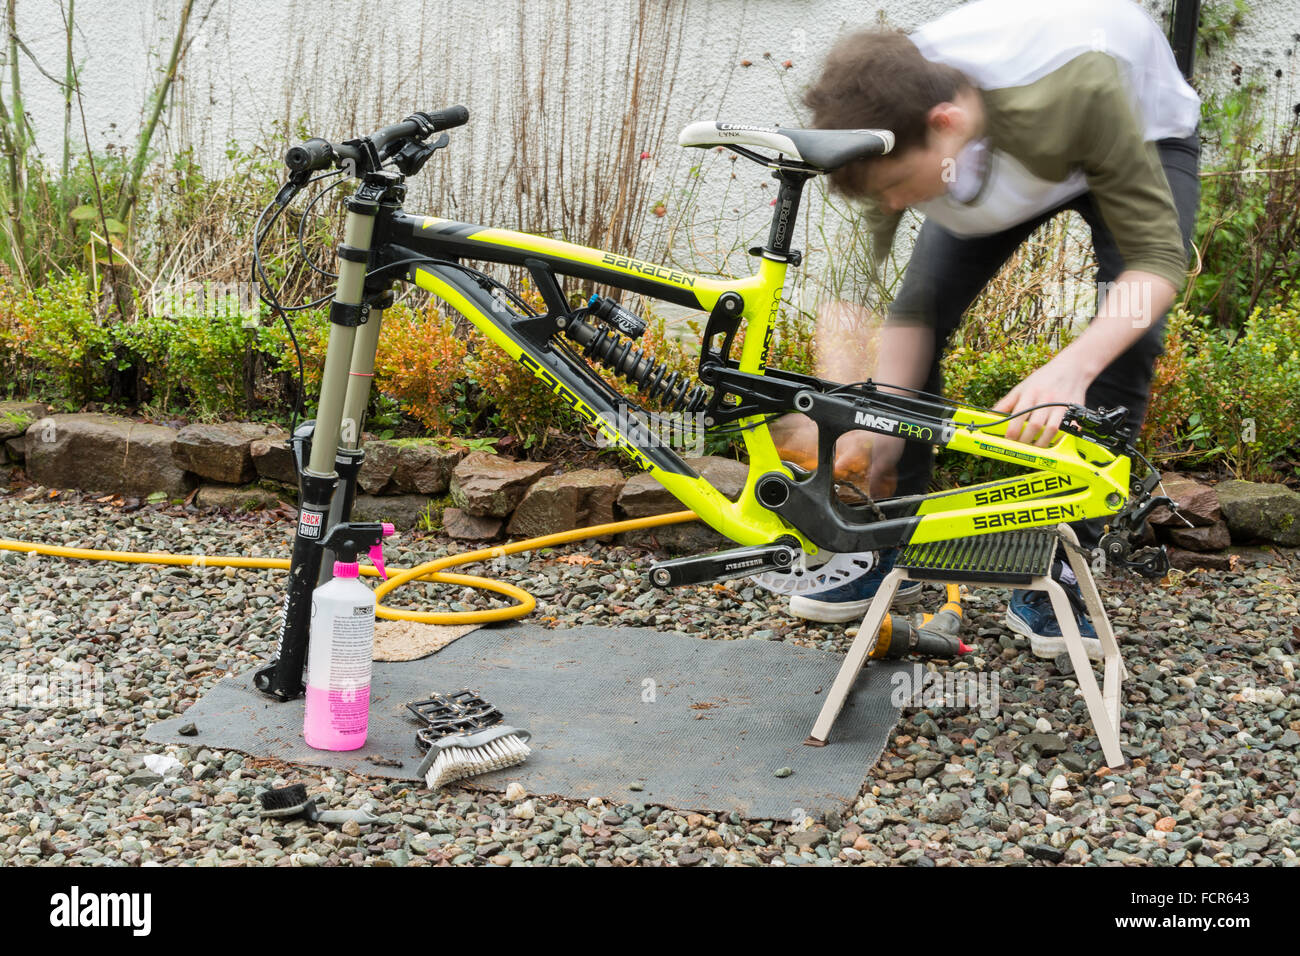 Teenager cleaning and building downhill mountain bike - Stock Image